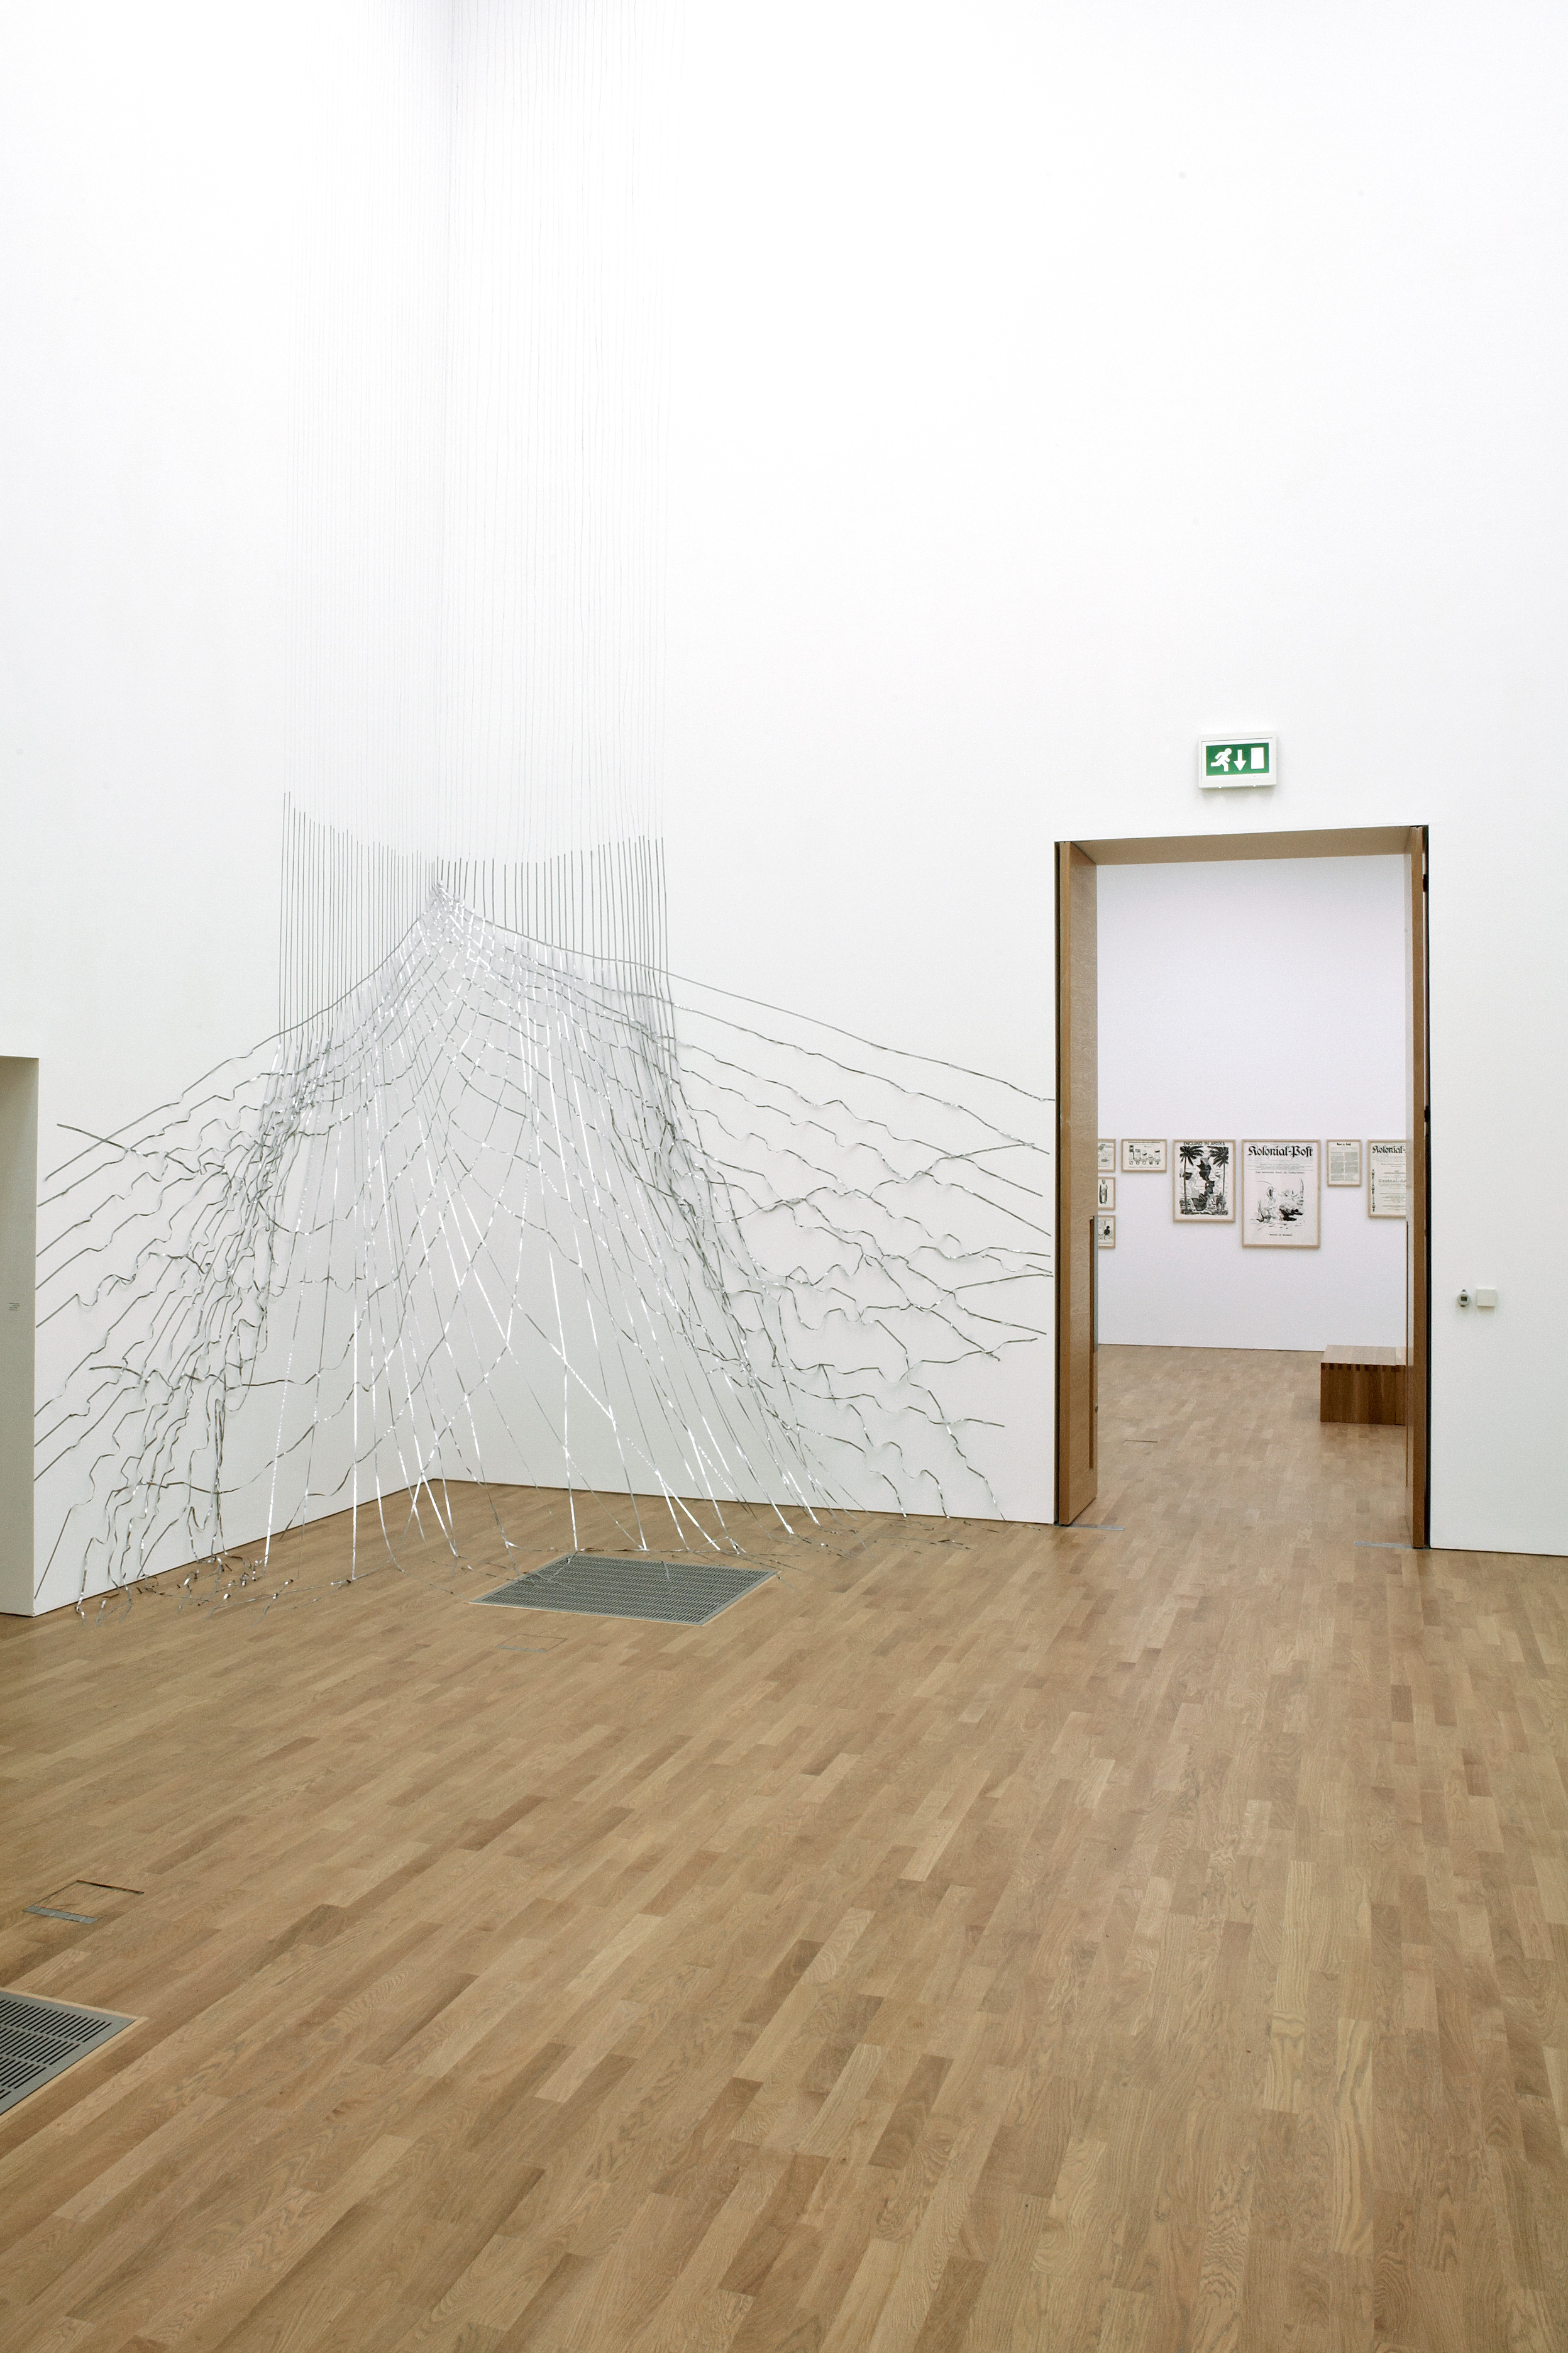 Galerie Barbara Thumm \ Fernando Bryce – The End of the Line: Attitudes in Drawing